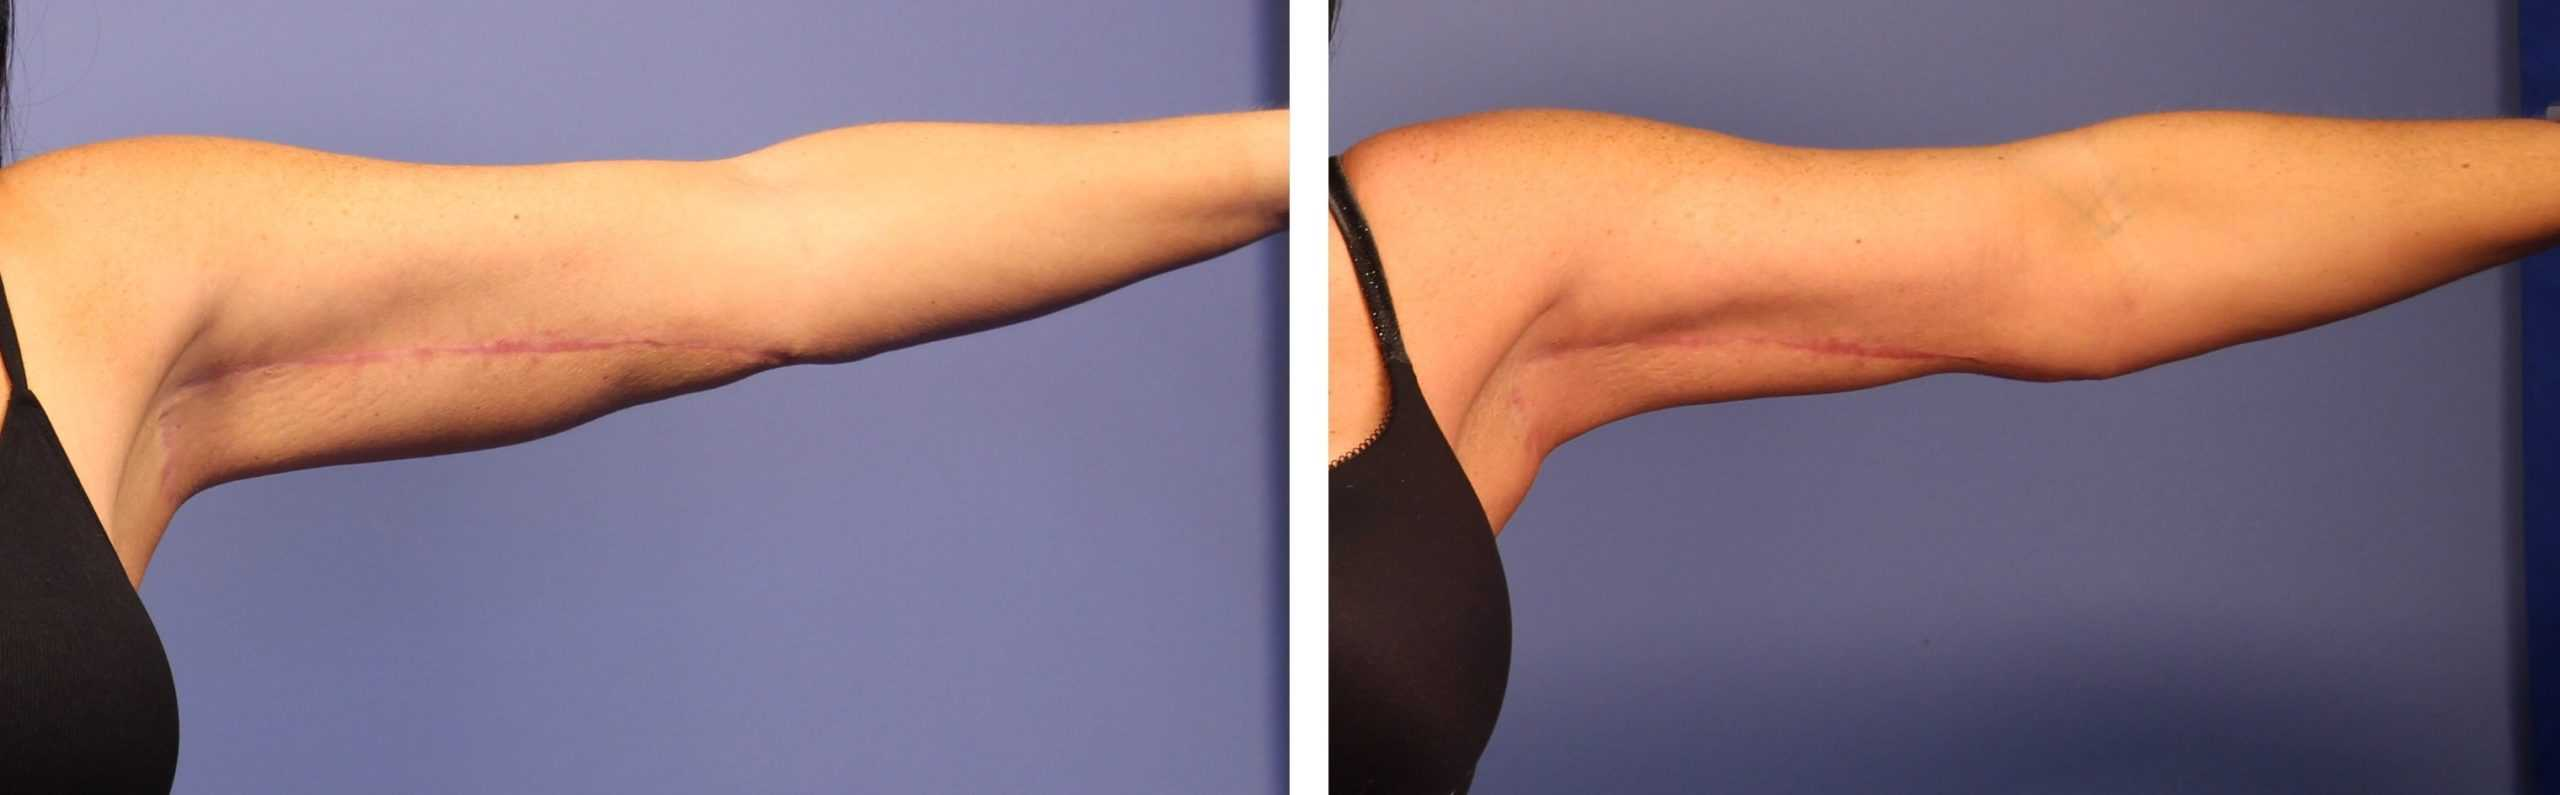 CoolSculpting for Arms Guide   Find Out If CoolSculpting Upper ...